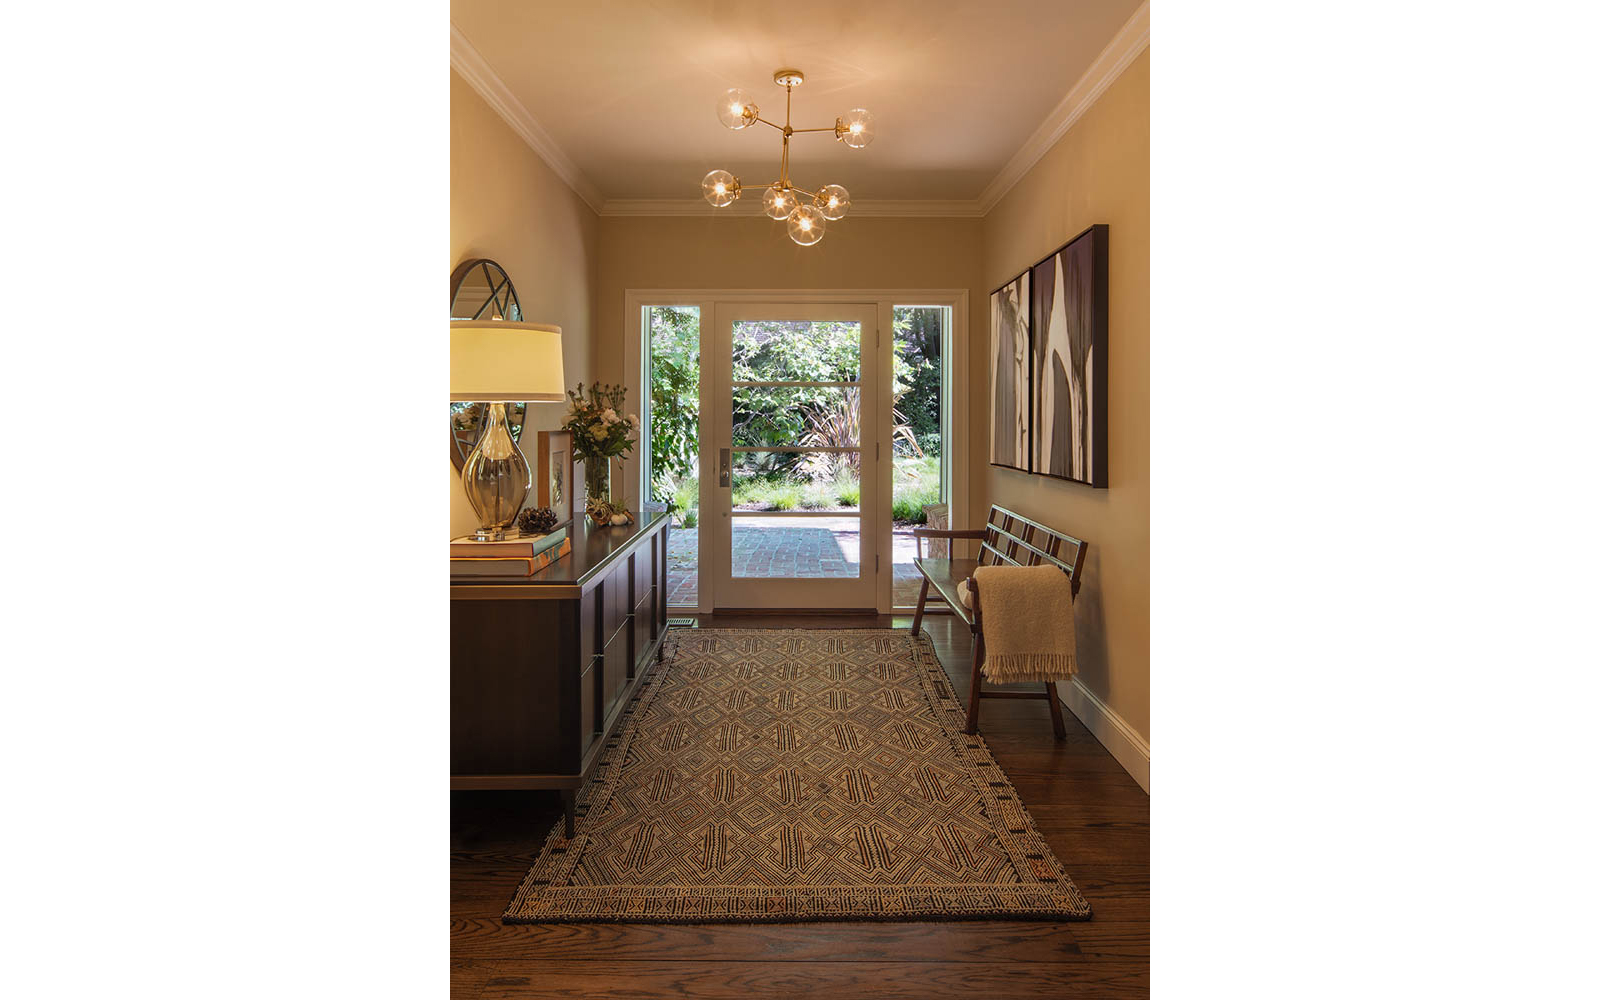 Entry Hall Chandelier Modern Ranch Style Home Decor